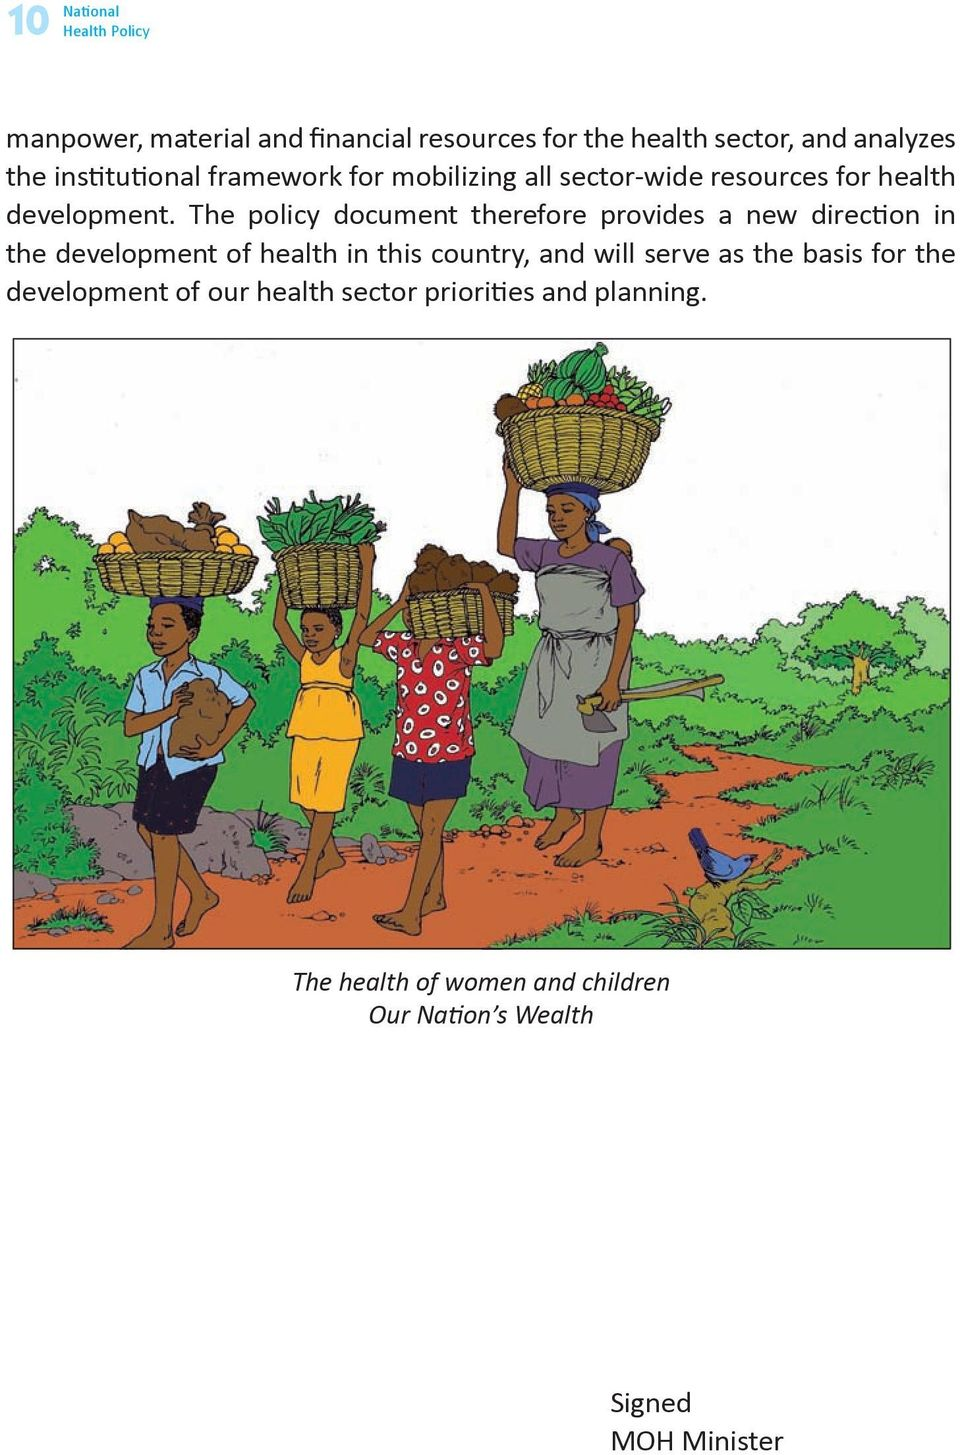 The policy document therefore provides a new direction in the development of health in this country, and will serve